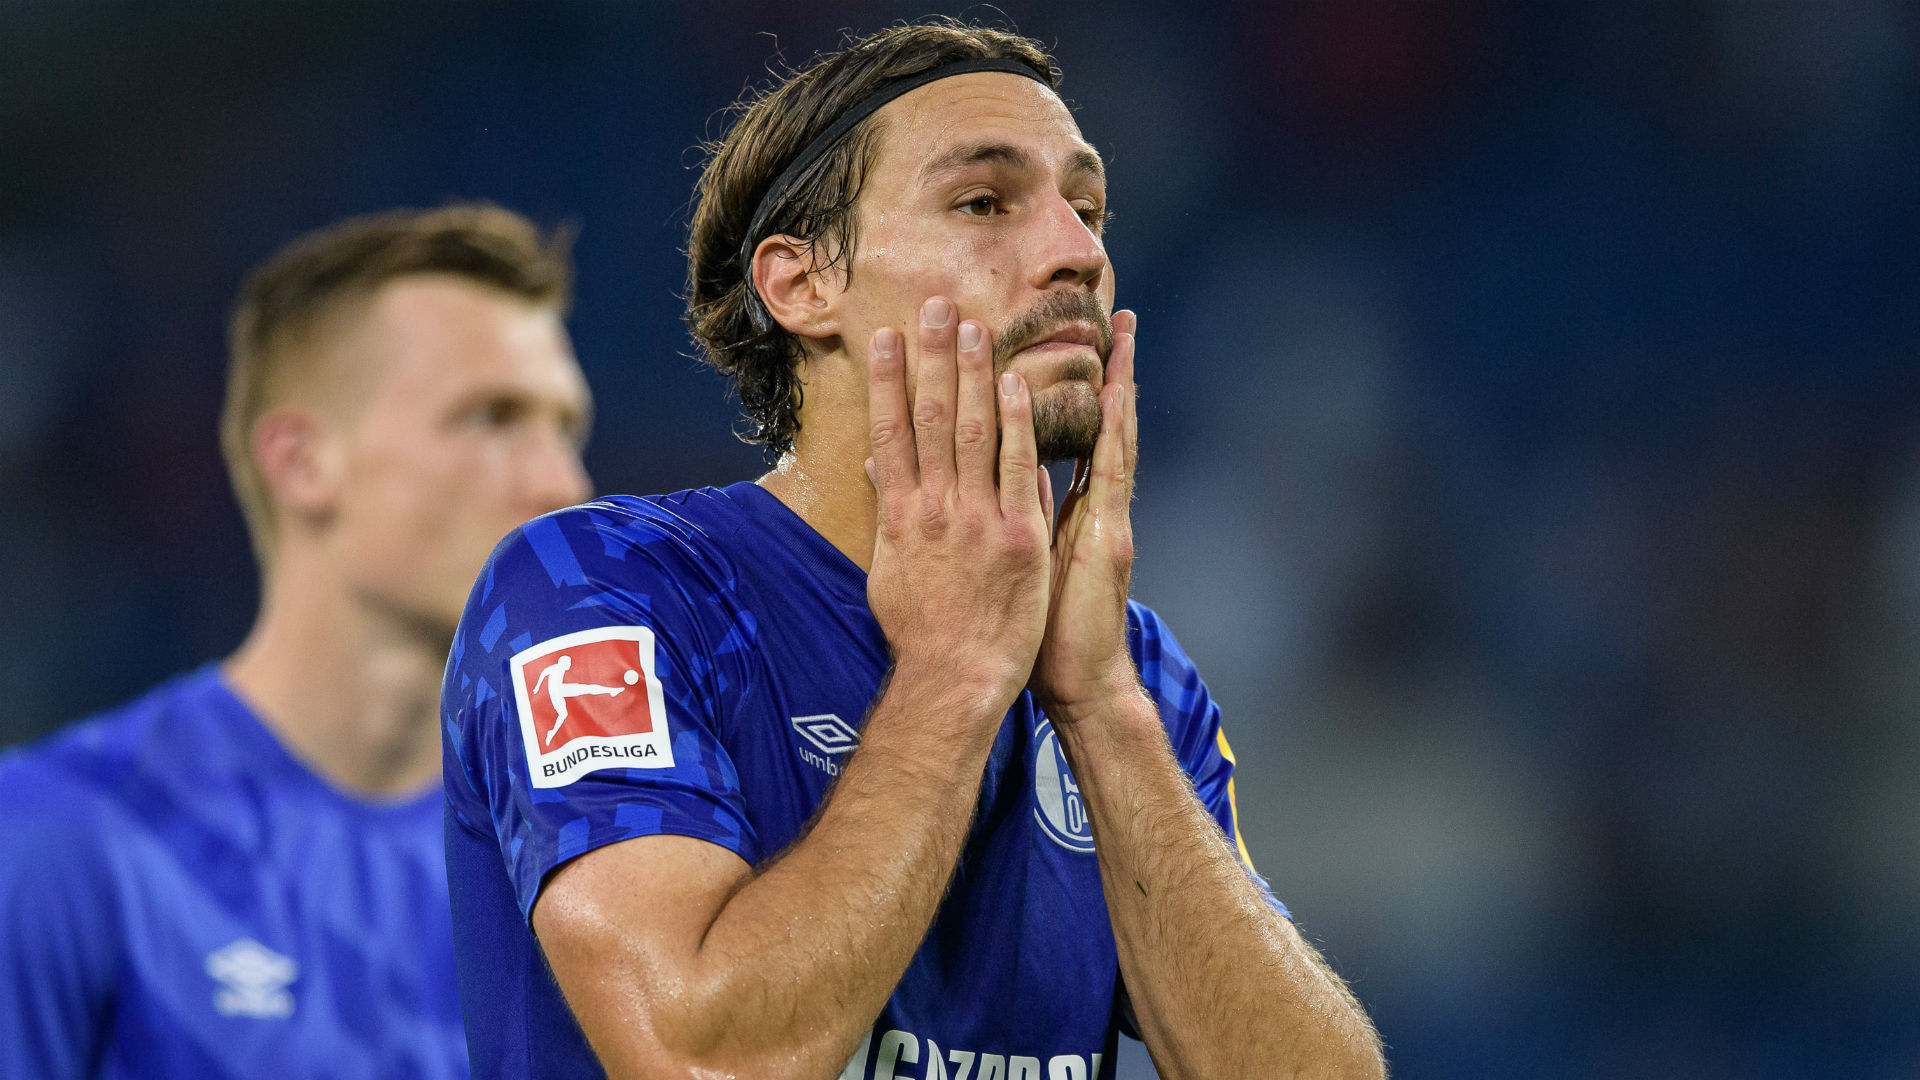 Schalke sporting director Schneider hopeful of Stambouli contract renewal